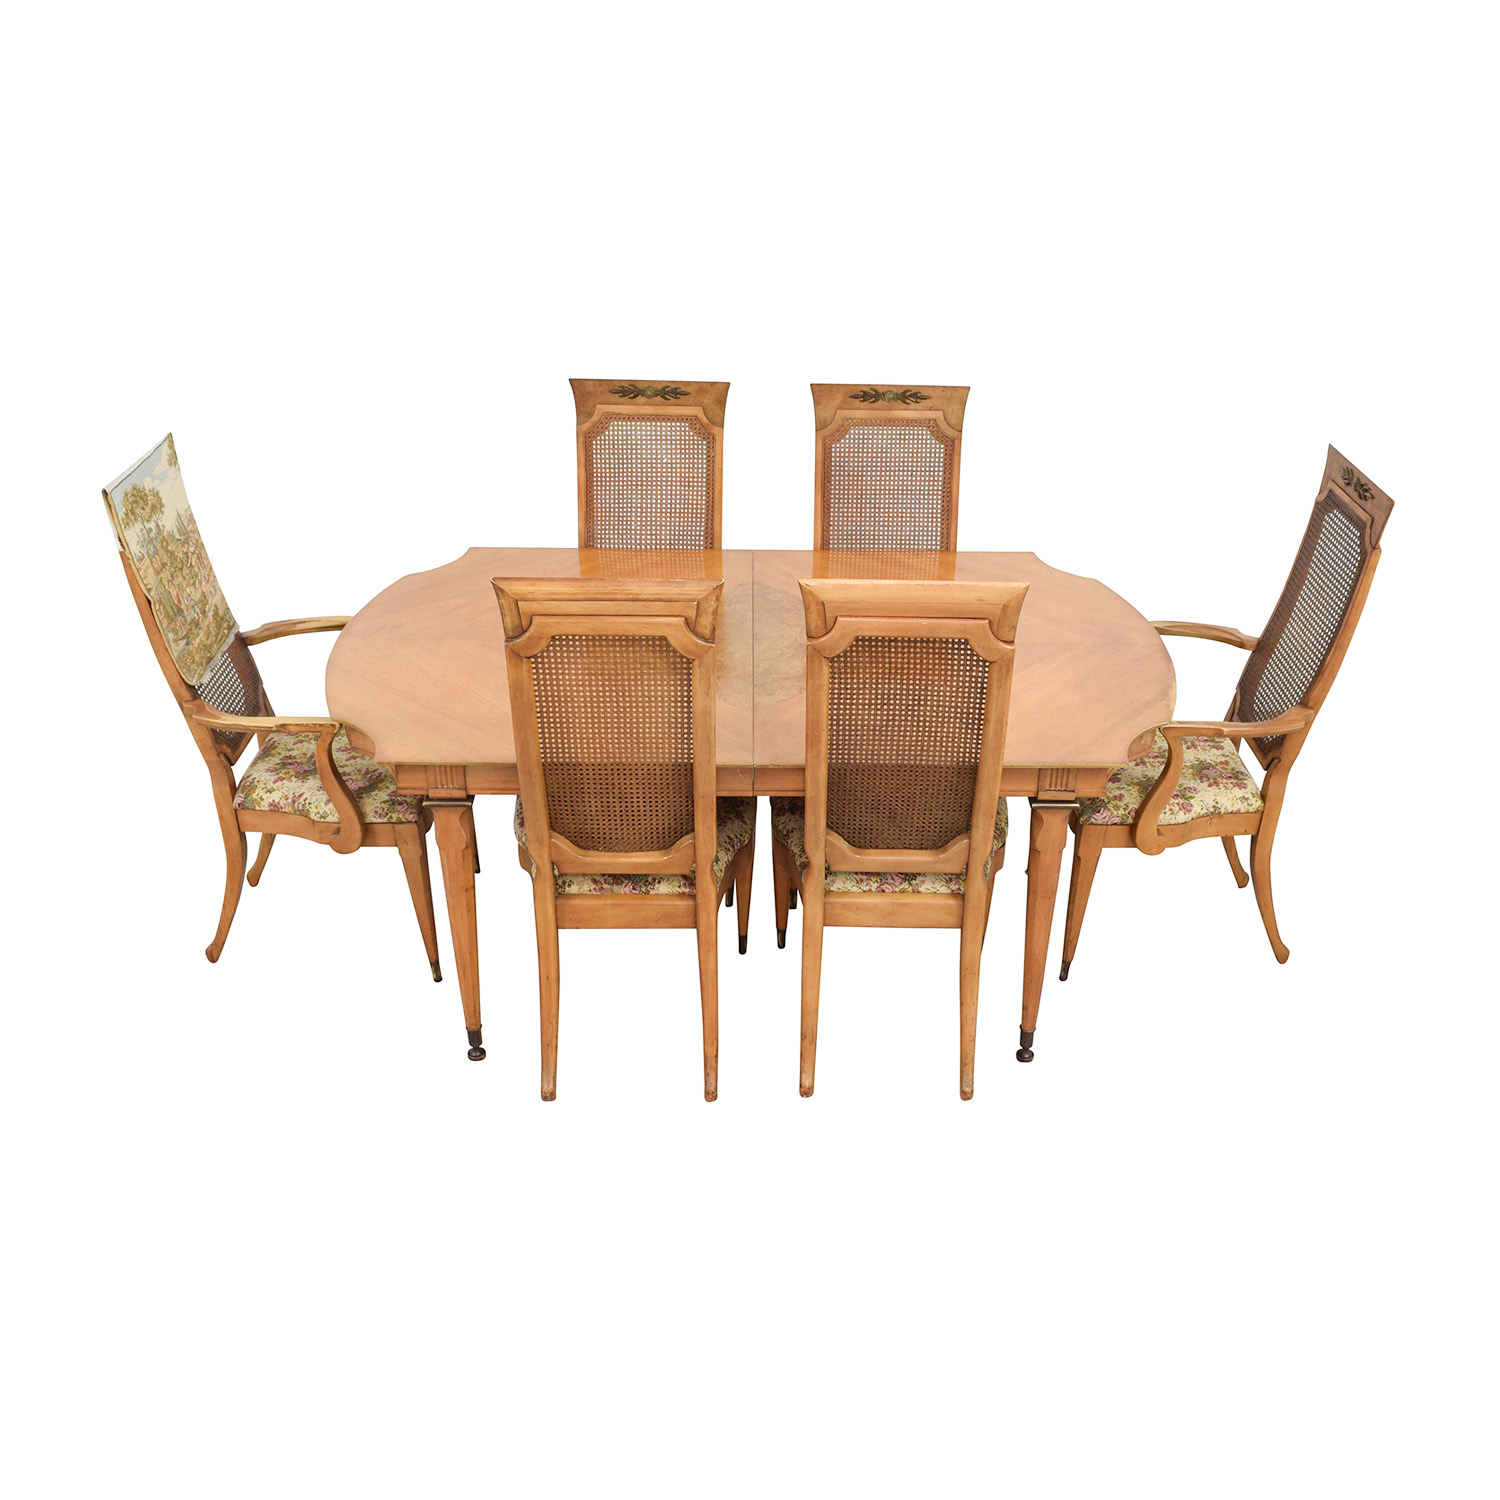 Black White Floral Dining Side Chair Set: Merz 1968 Merz 1968 Wood Dining Set With Floral